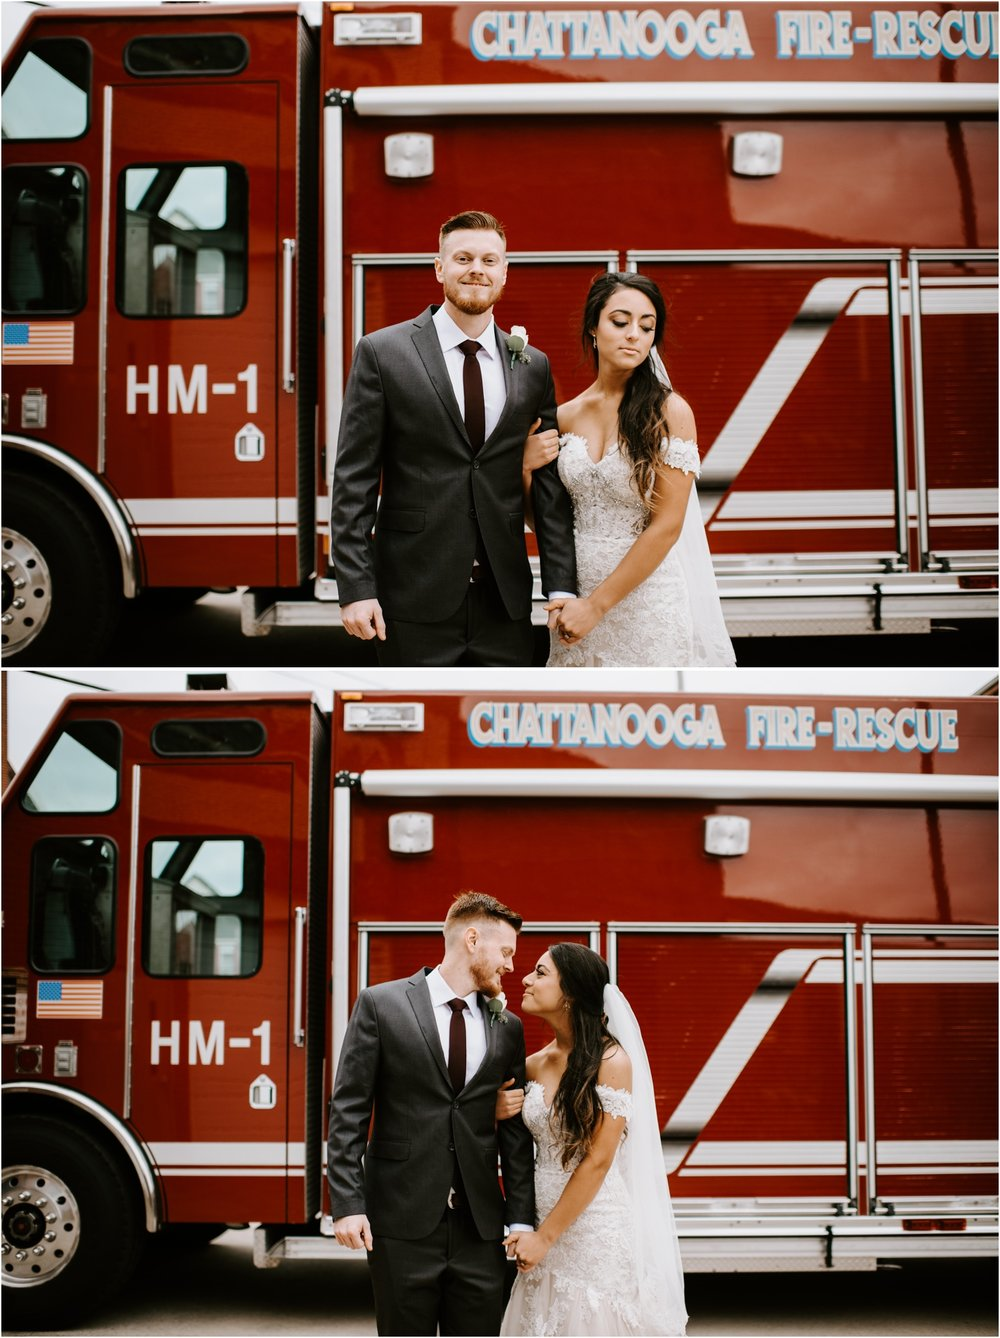 guy and girl in front of fire truck on wedding day